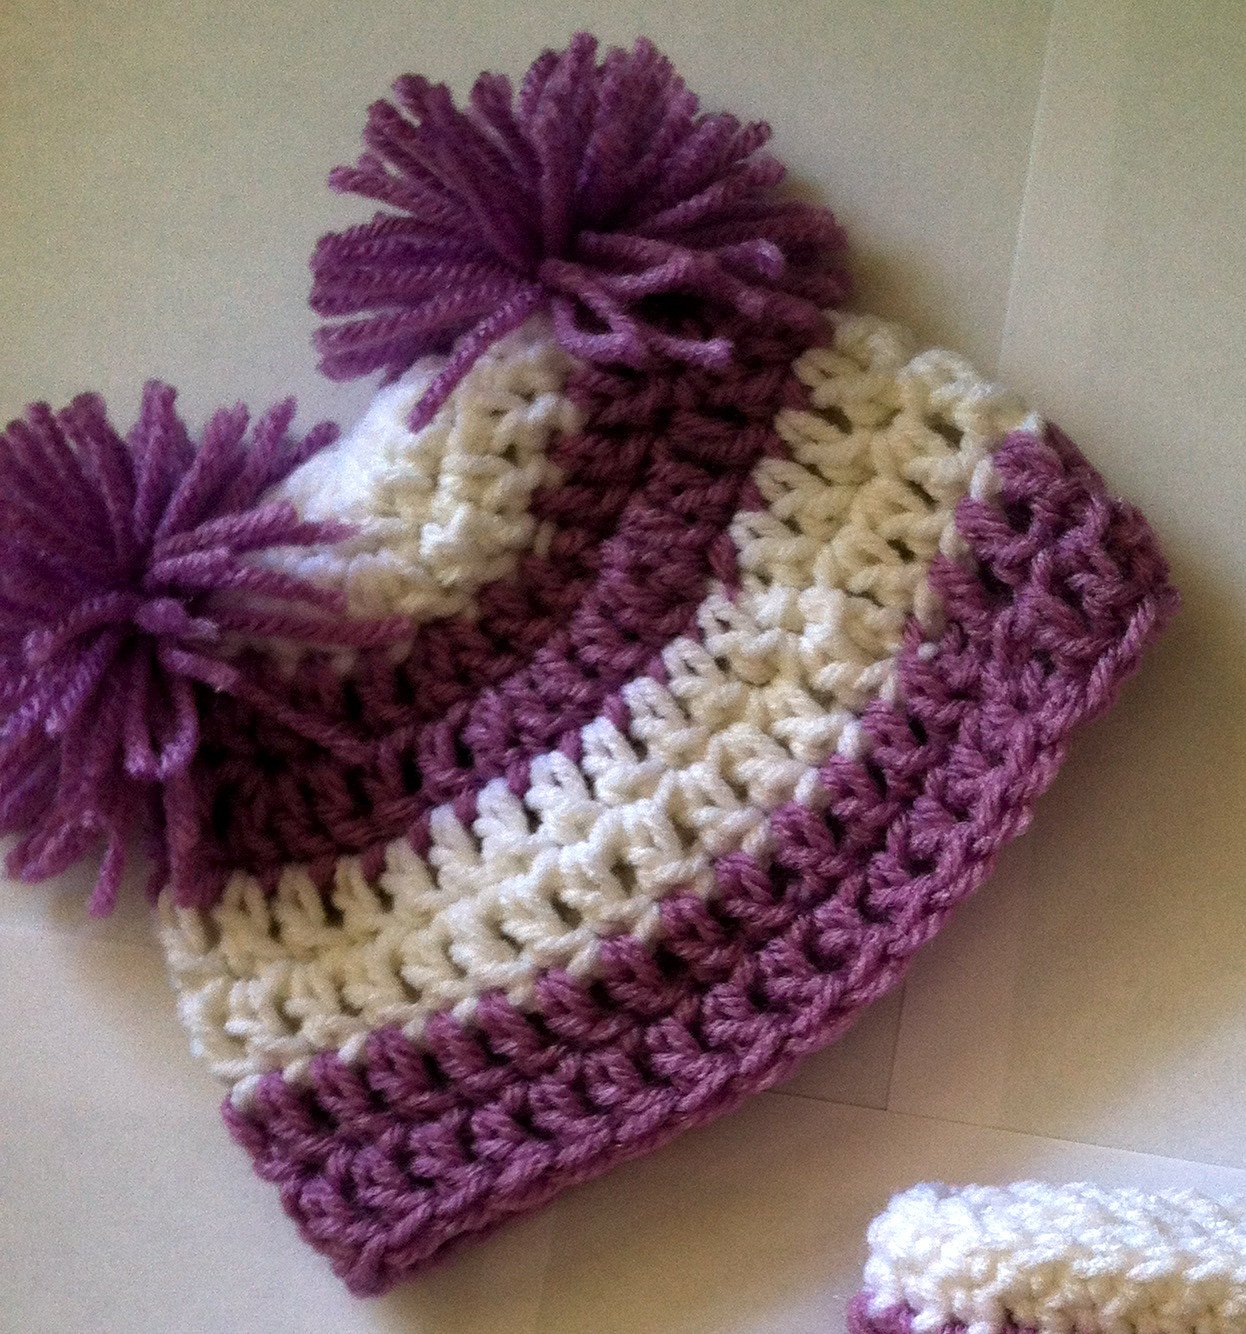 Free Crochet Patterns Inspirational Basic Beanie Free Crochet Pattern Of New 41 Photos Free Crochet Patterns